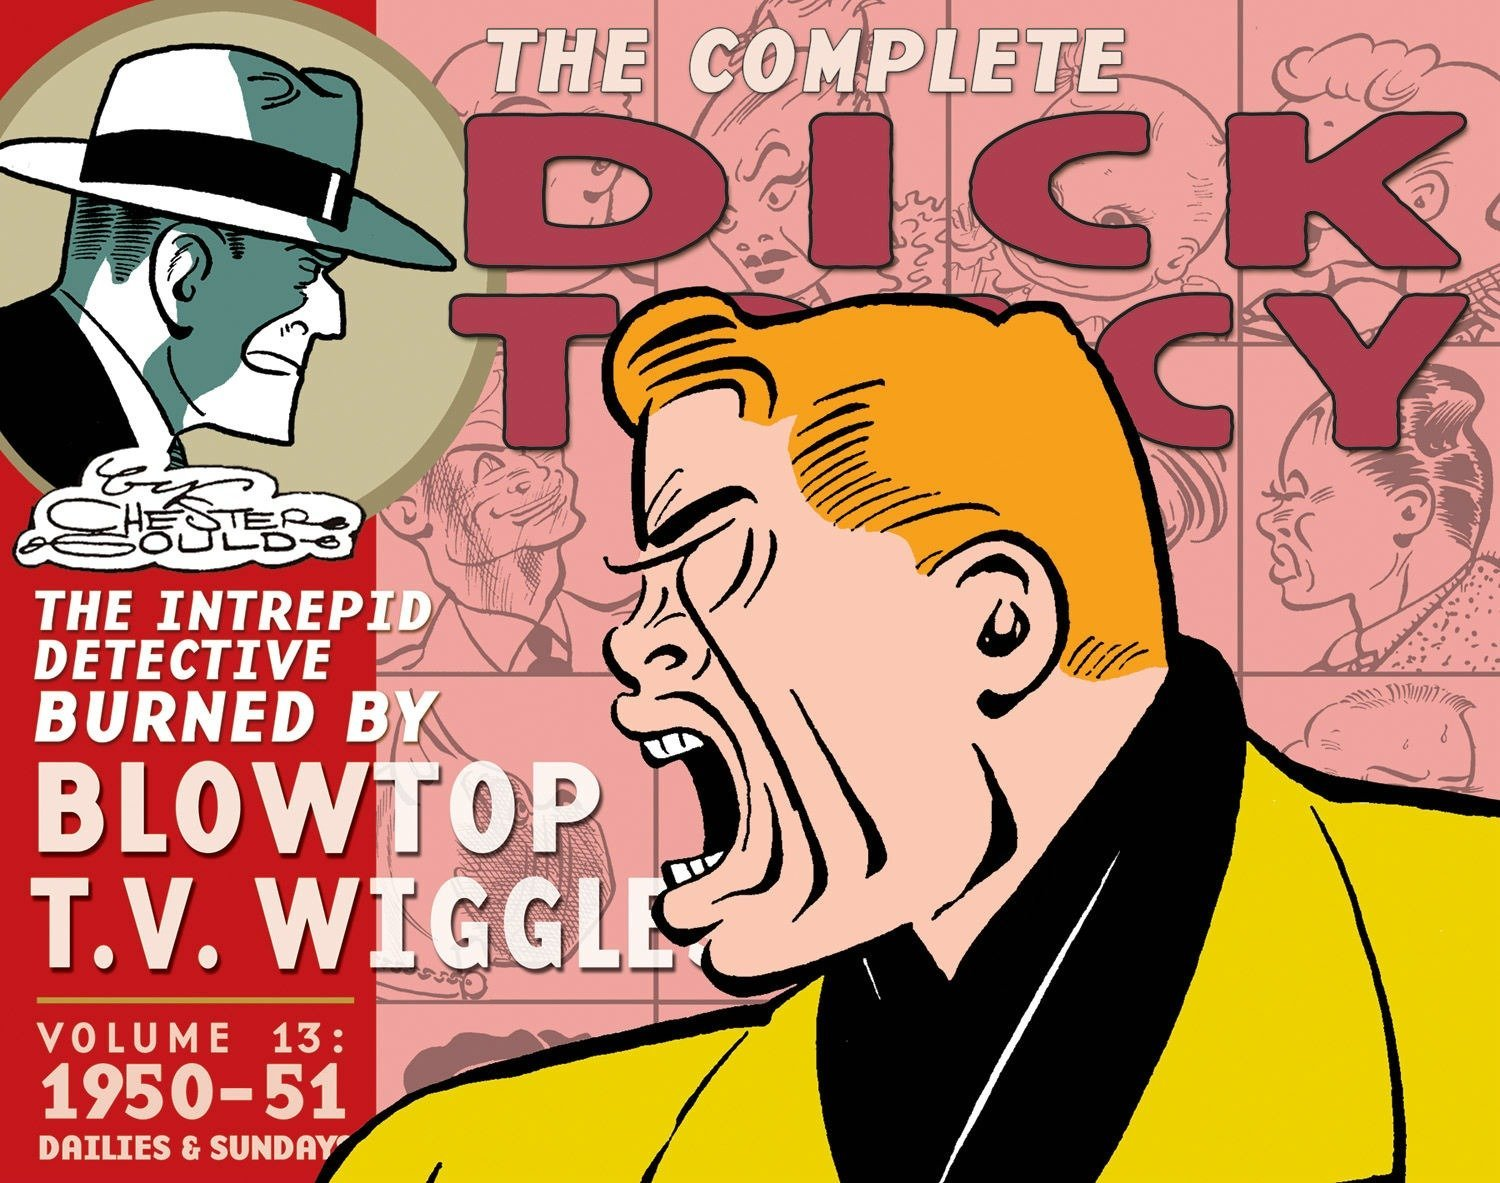 Download Complete Chester Gould's Dick Tracy Volume 13 ebook